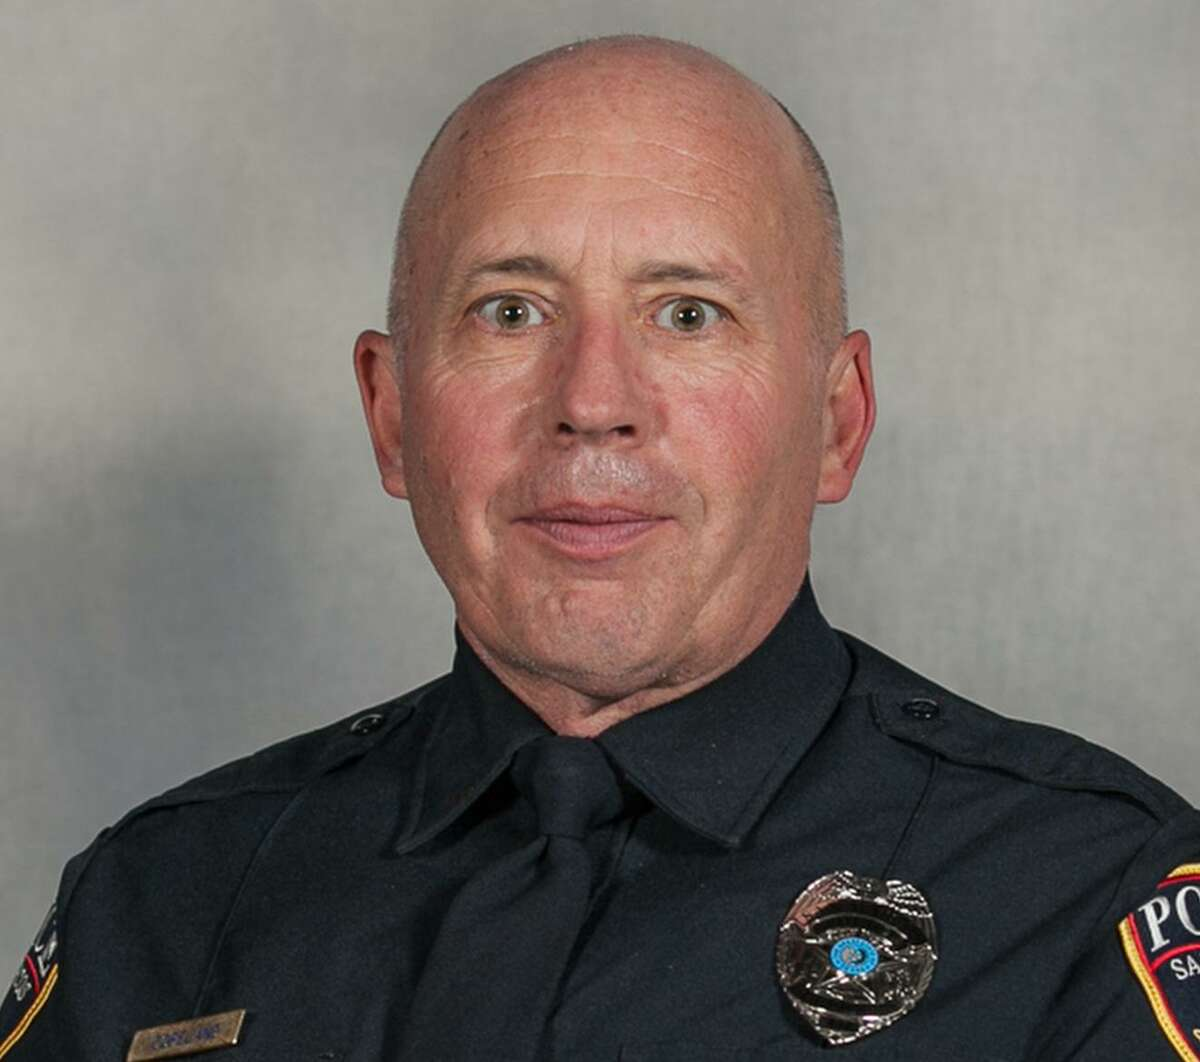 San Marcos Police Department Officer Kenneth Copeland, 58, was killed in the line of duty last week when he was shot multiple times by a person to whom he was serving a warrant. He was the first officer in San Marcos to be killed in the line of duty.